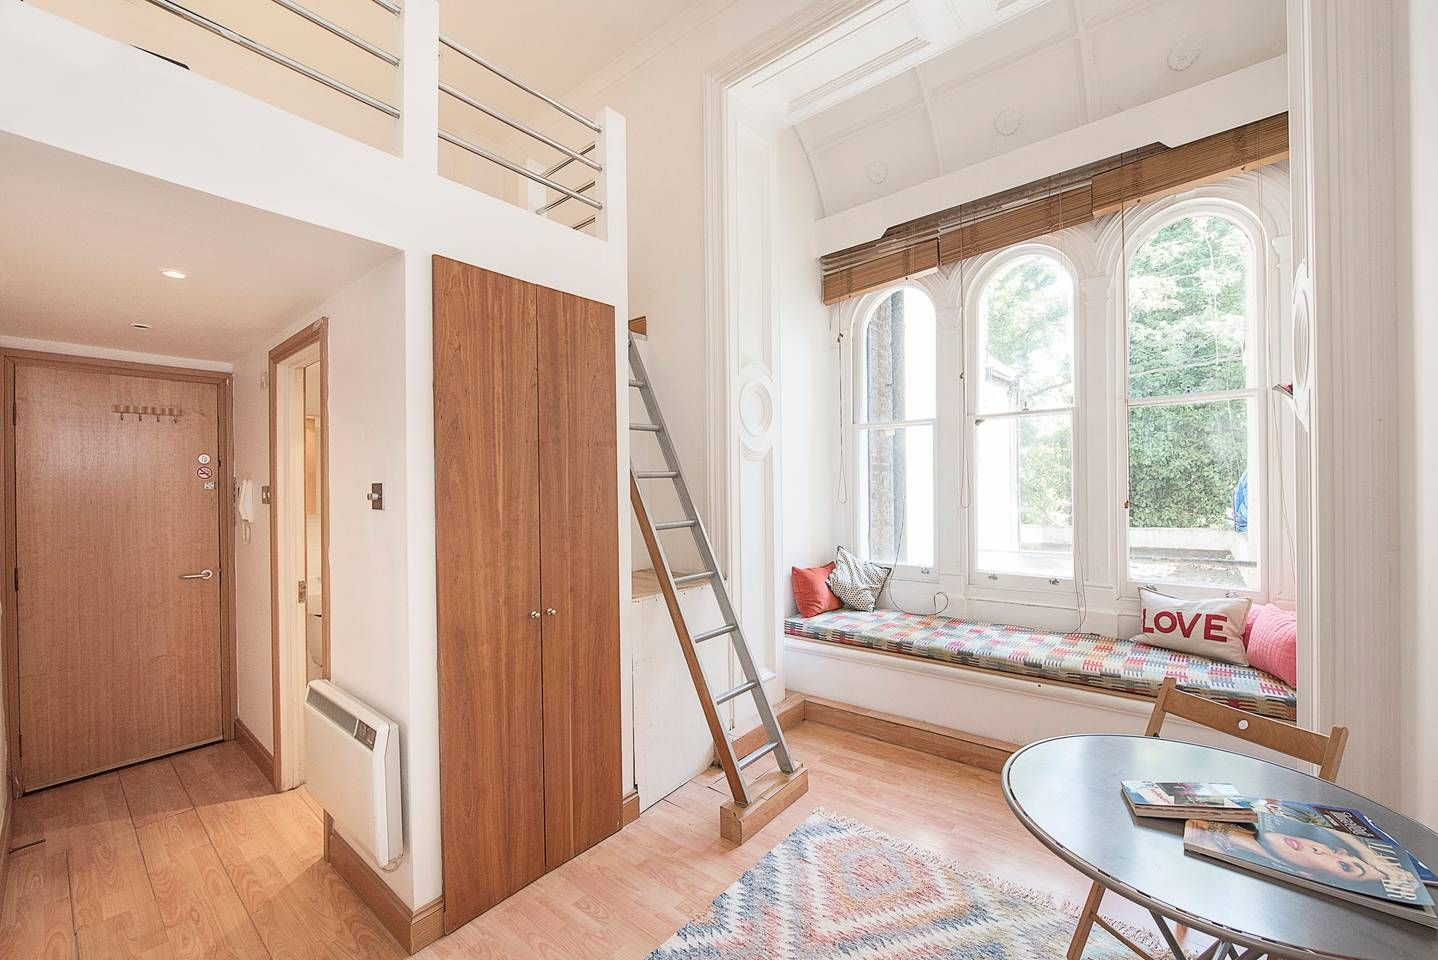 Irresile Notting Hill Studio Apartments For Rent In London England United Kingdom